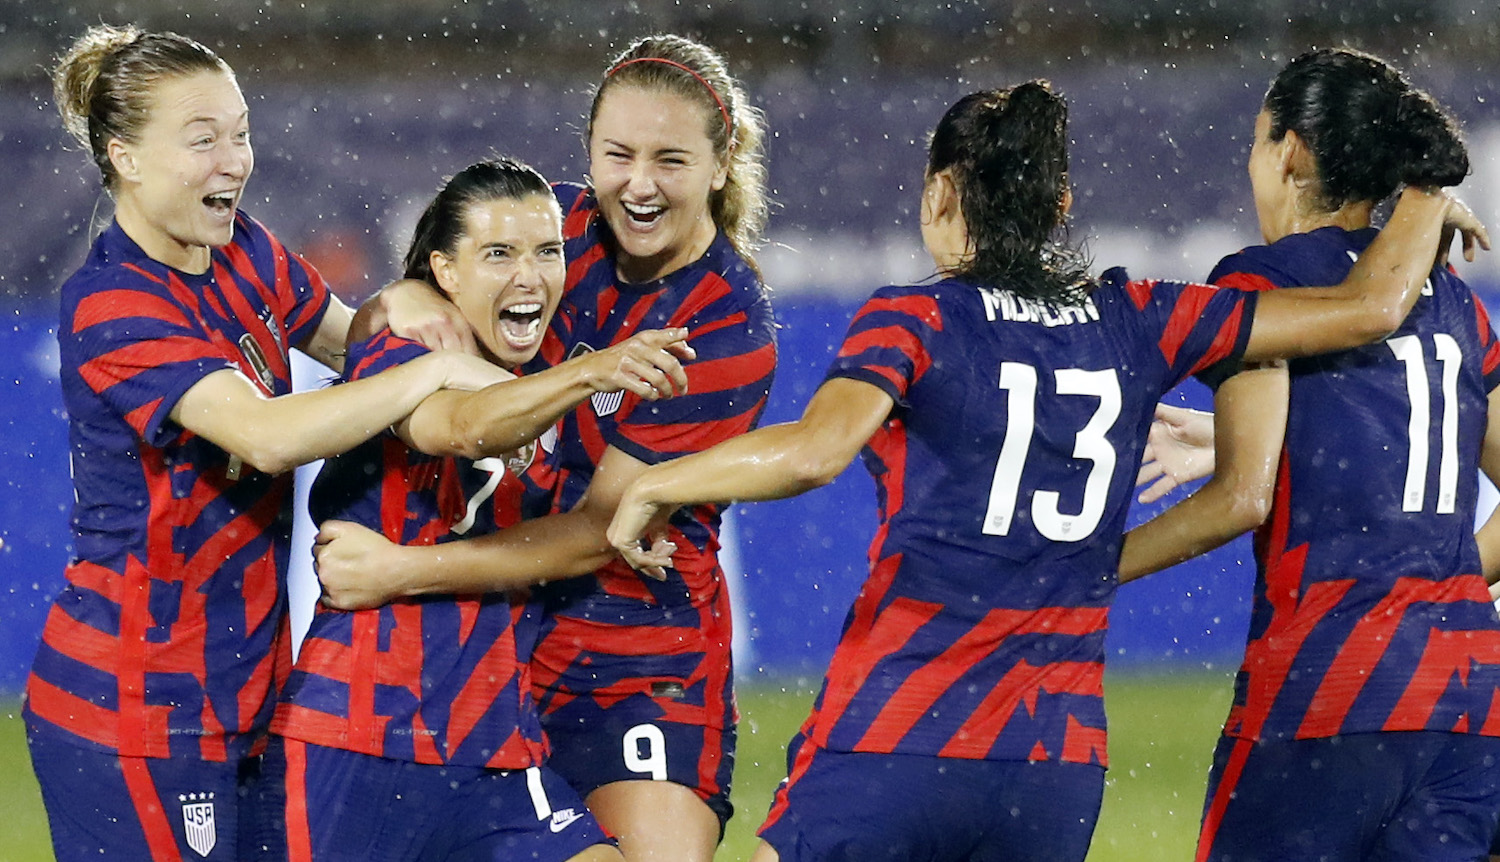 EAST HARTFORD, CONNECTICUT - JULY 01: Tobin Heath #7 of United States celebrates with Christen Press #11, Alex Morgan #13, Lindsey Horan #9 and Emily Sonnett, #14 after scoring a goal against Mexico at Rentschler Field on July 01, 2021 in East Hartford, Connecticut. (Photo by Maddie Meyer/Getty Images)